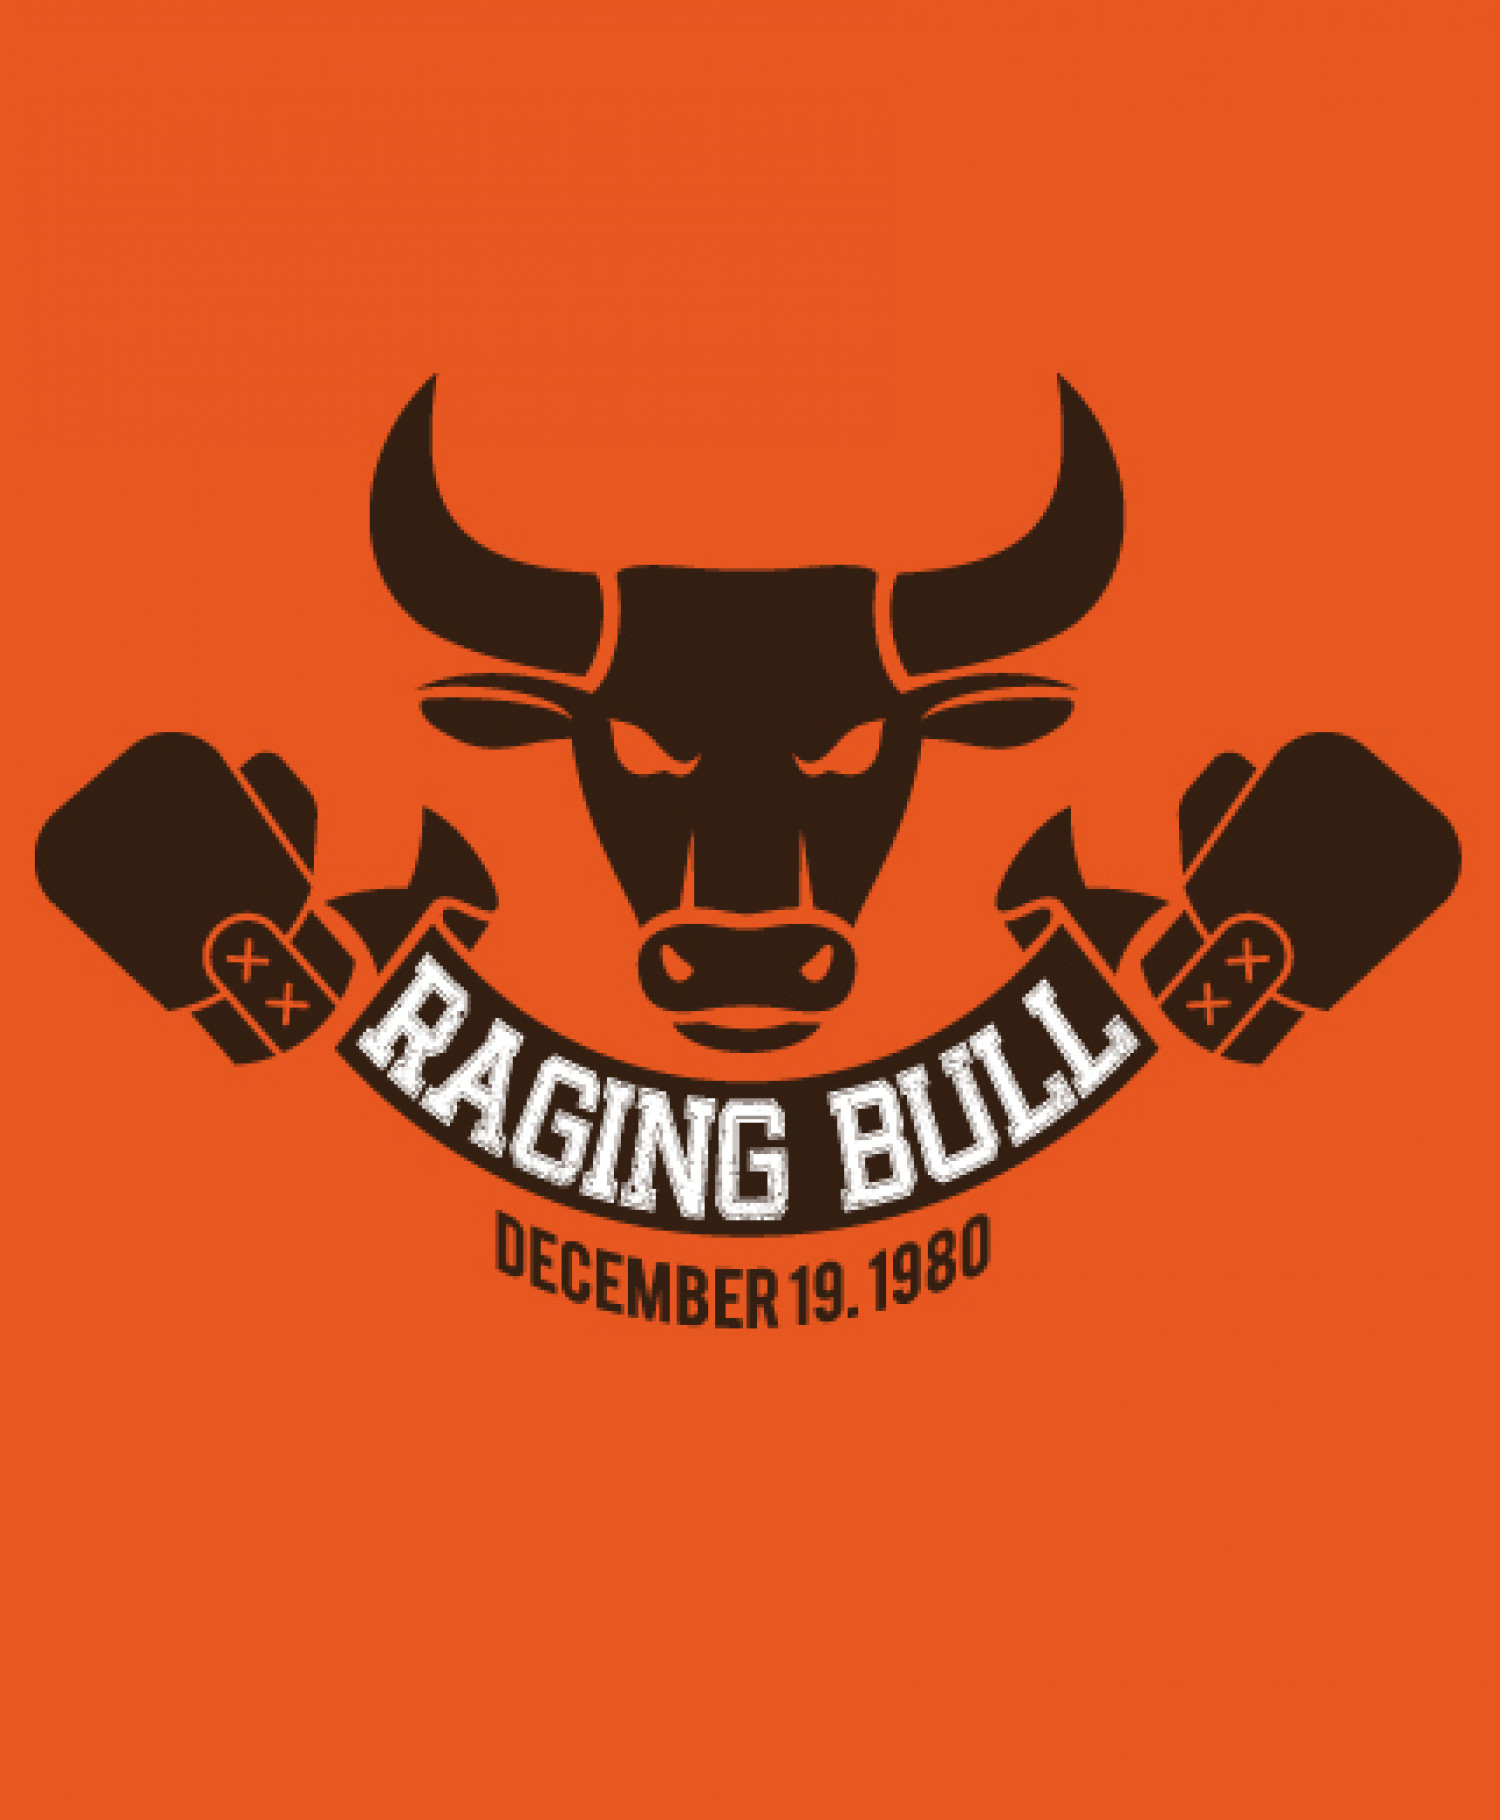 Raging Bull Design Infographic